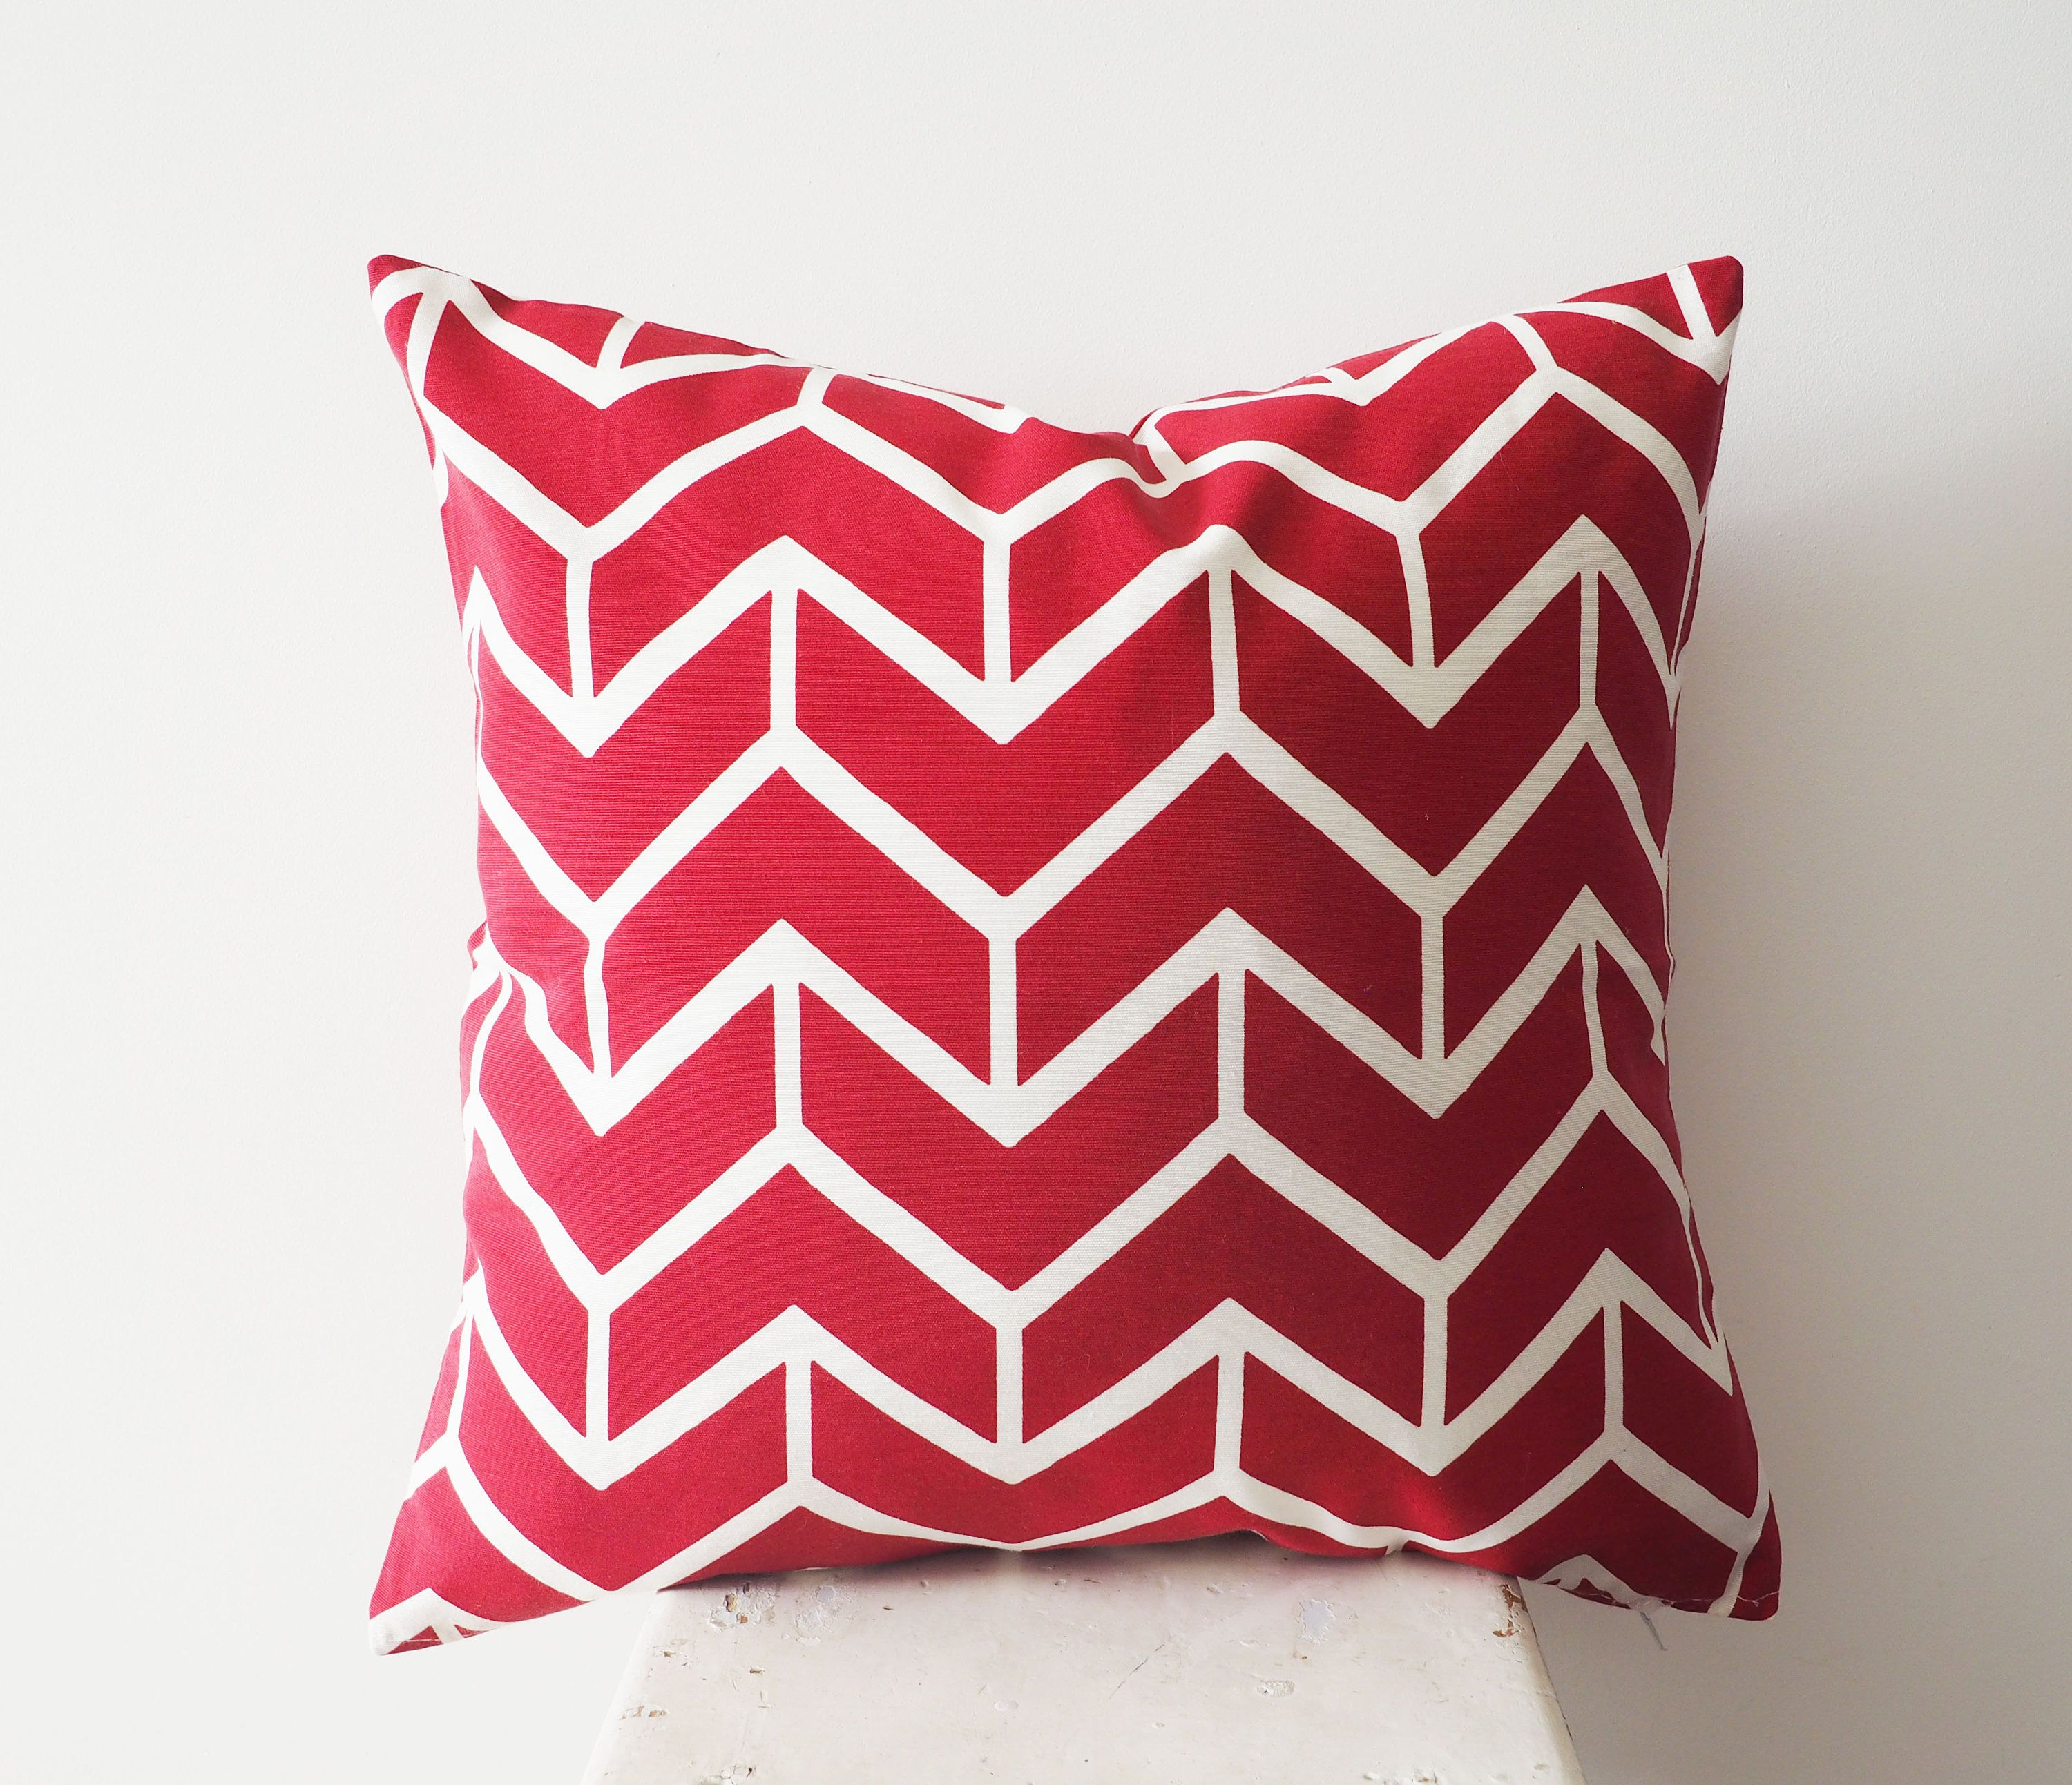 kiwi products just spun case square polyester pillow like prints by thalia